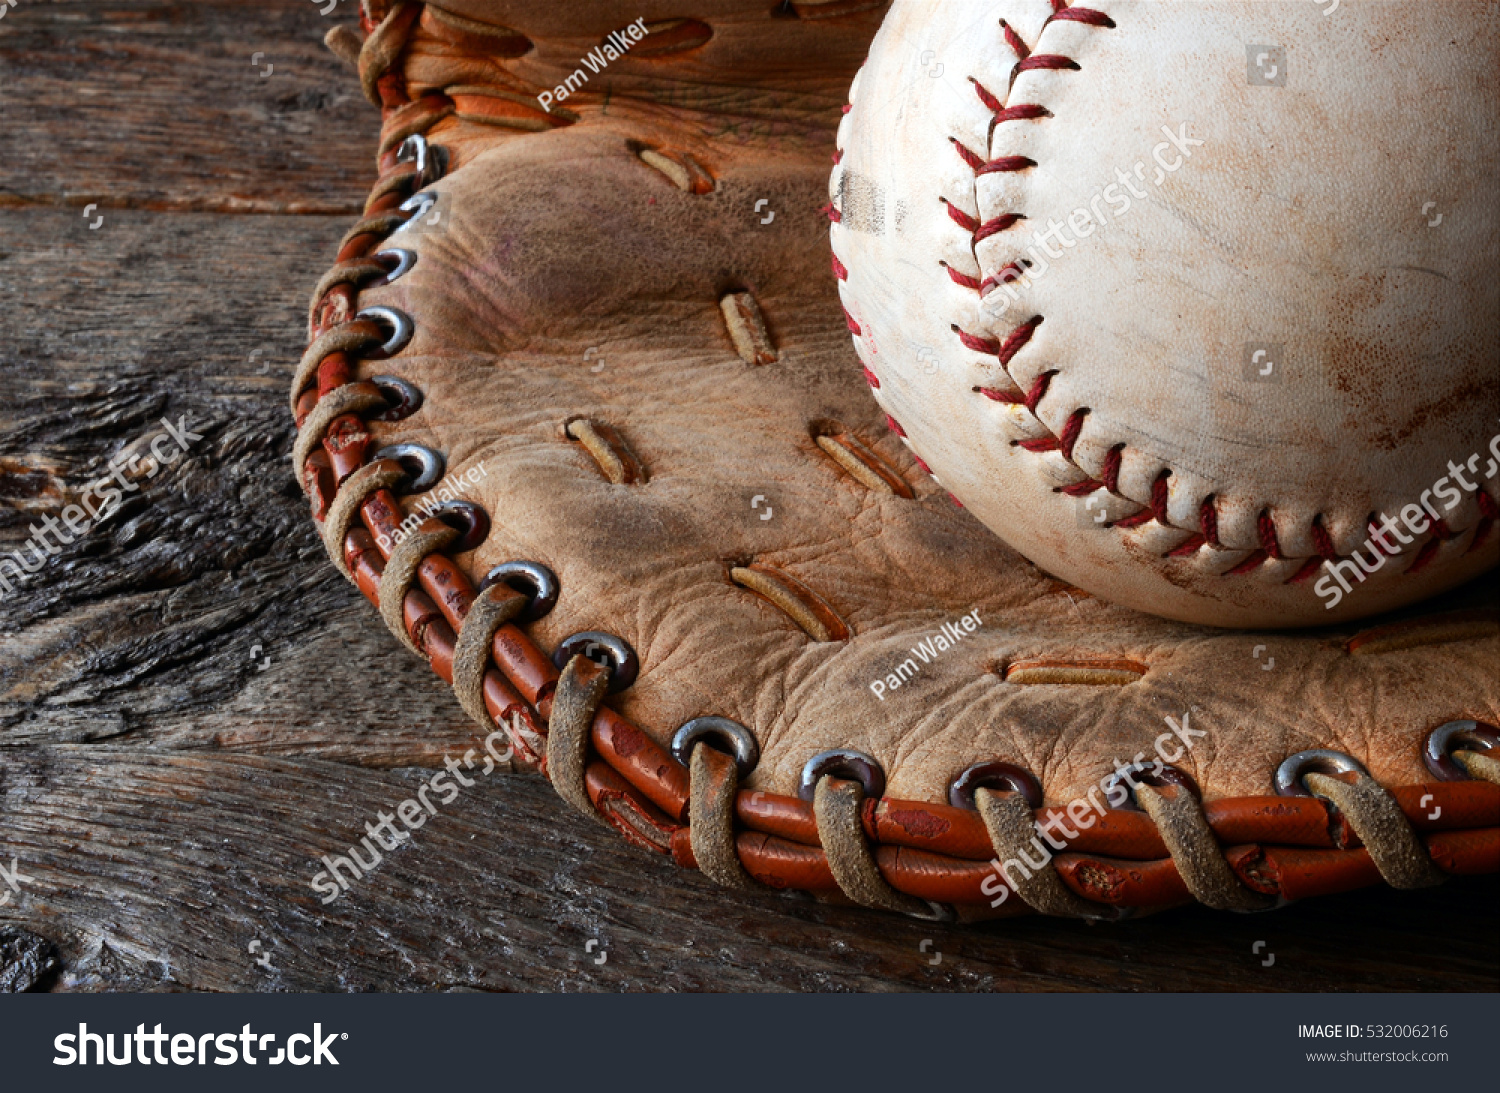 A low angle image of an old used baseball and leather baseball glove. #532006216